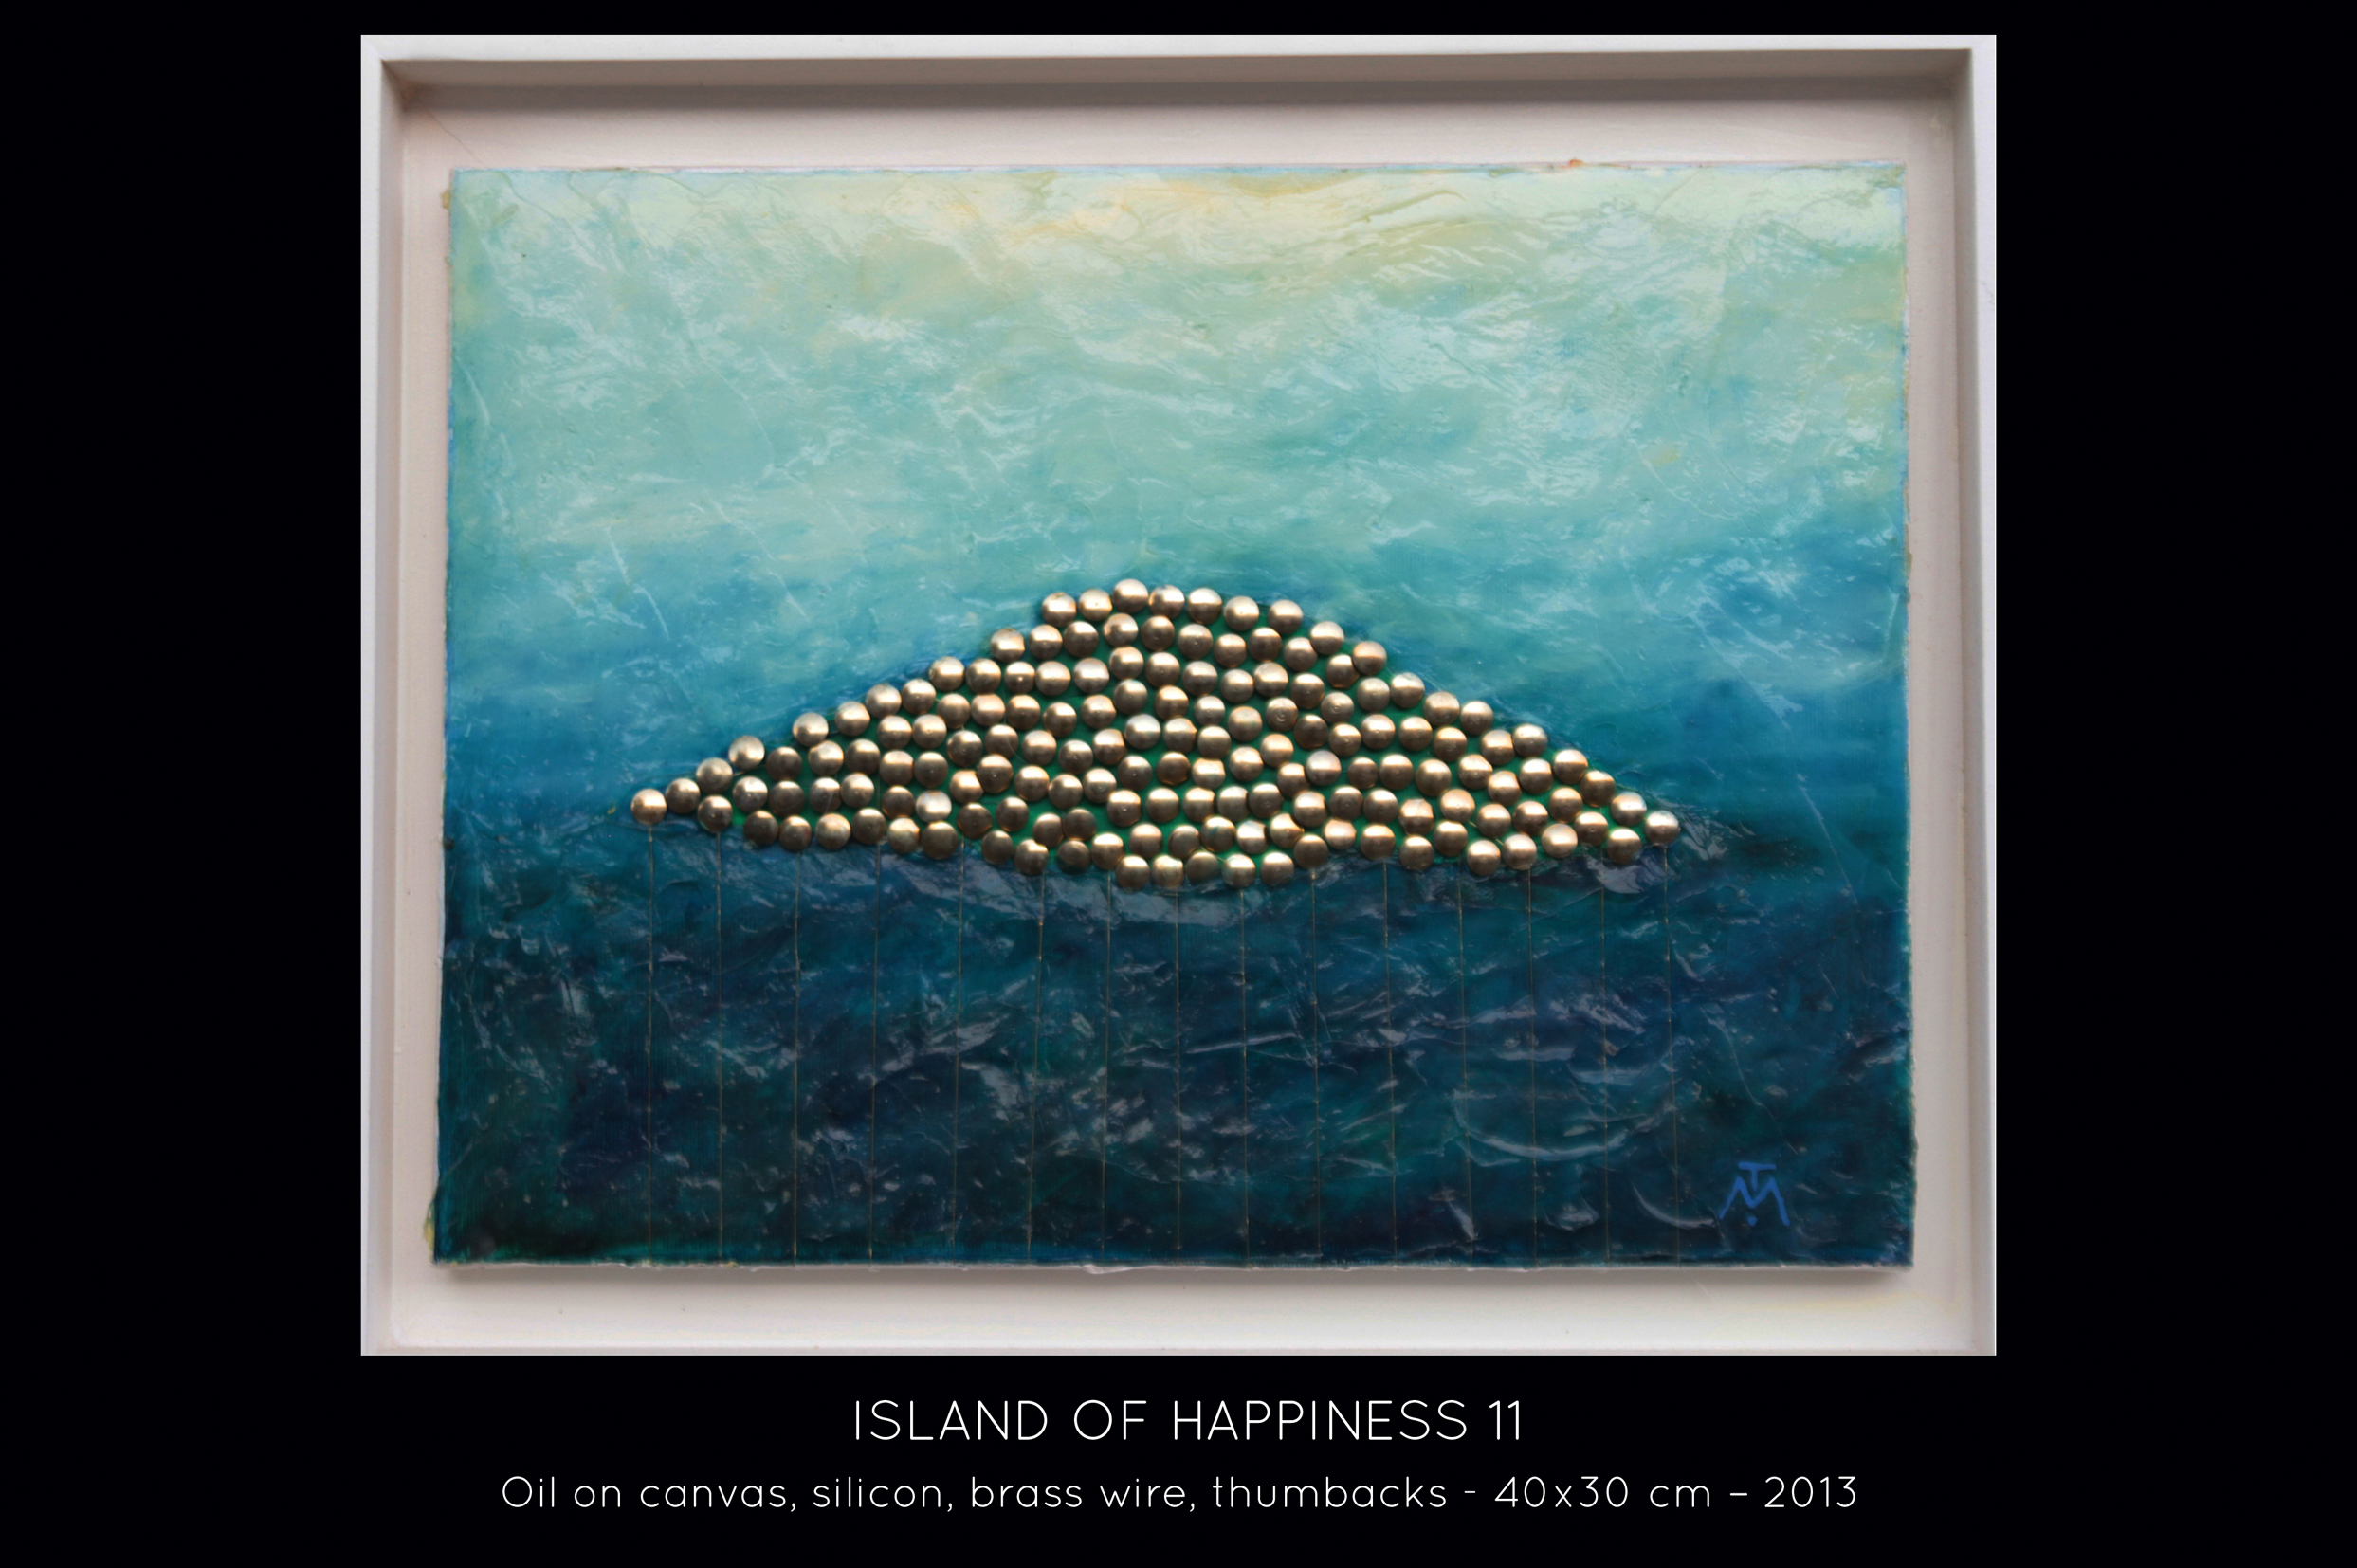 ISLAND OF HAPPINESS 11